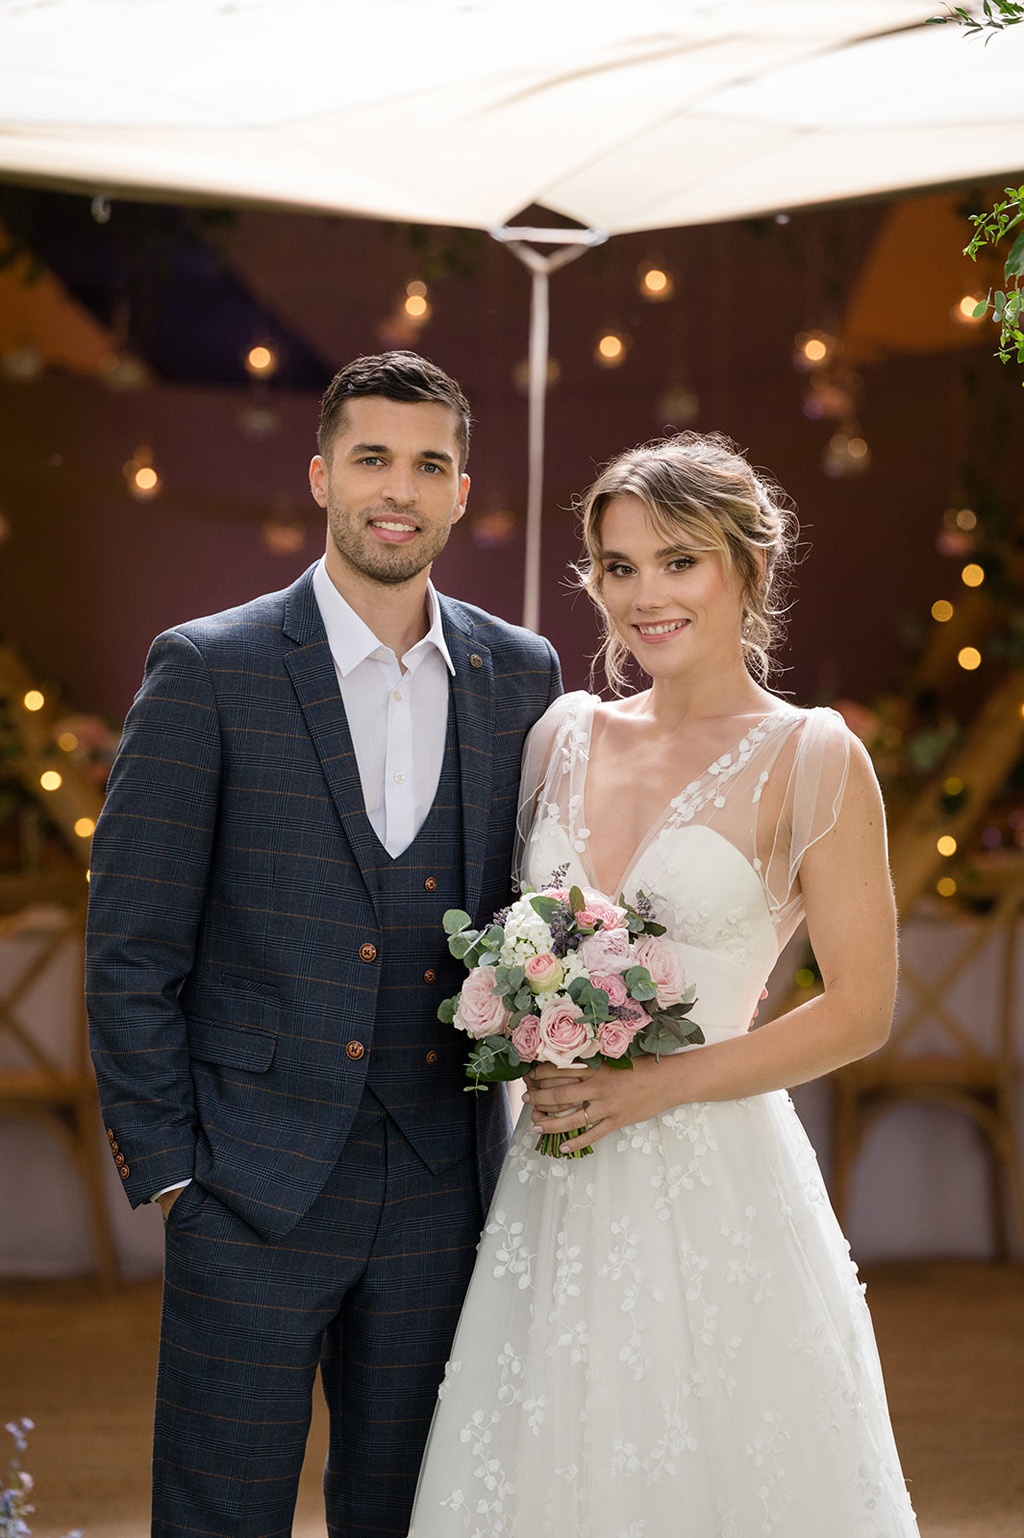 model bride and groom stood smiling towards the camera. She holds a country style bouquet and wears a white patterned dress. He's in a smart navy suit with no tie and an open collar